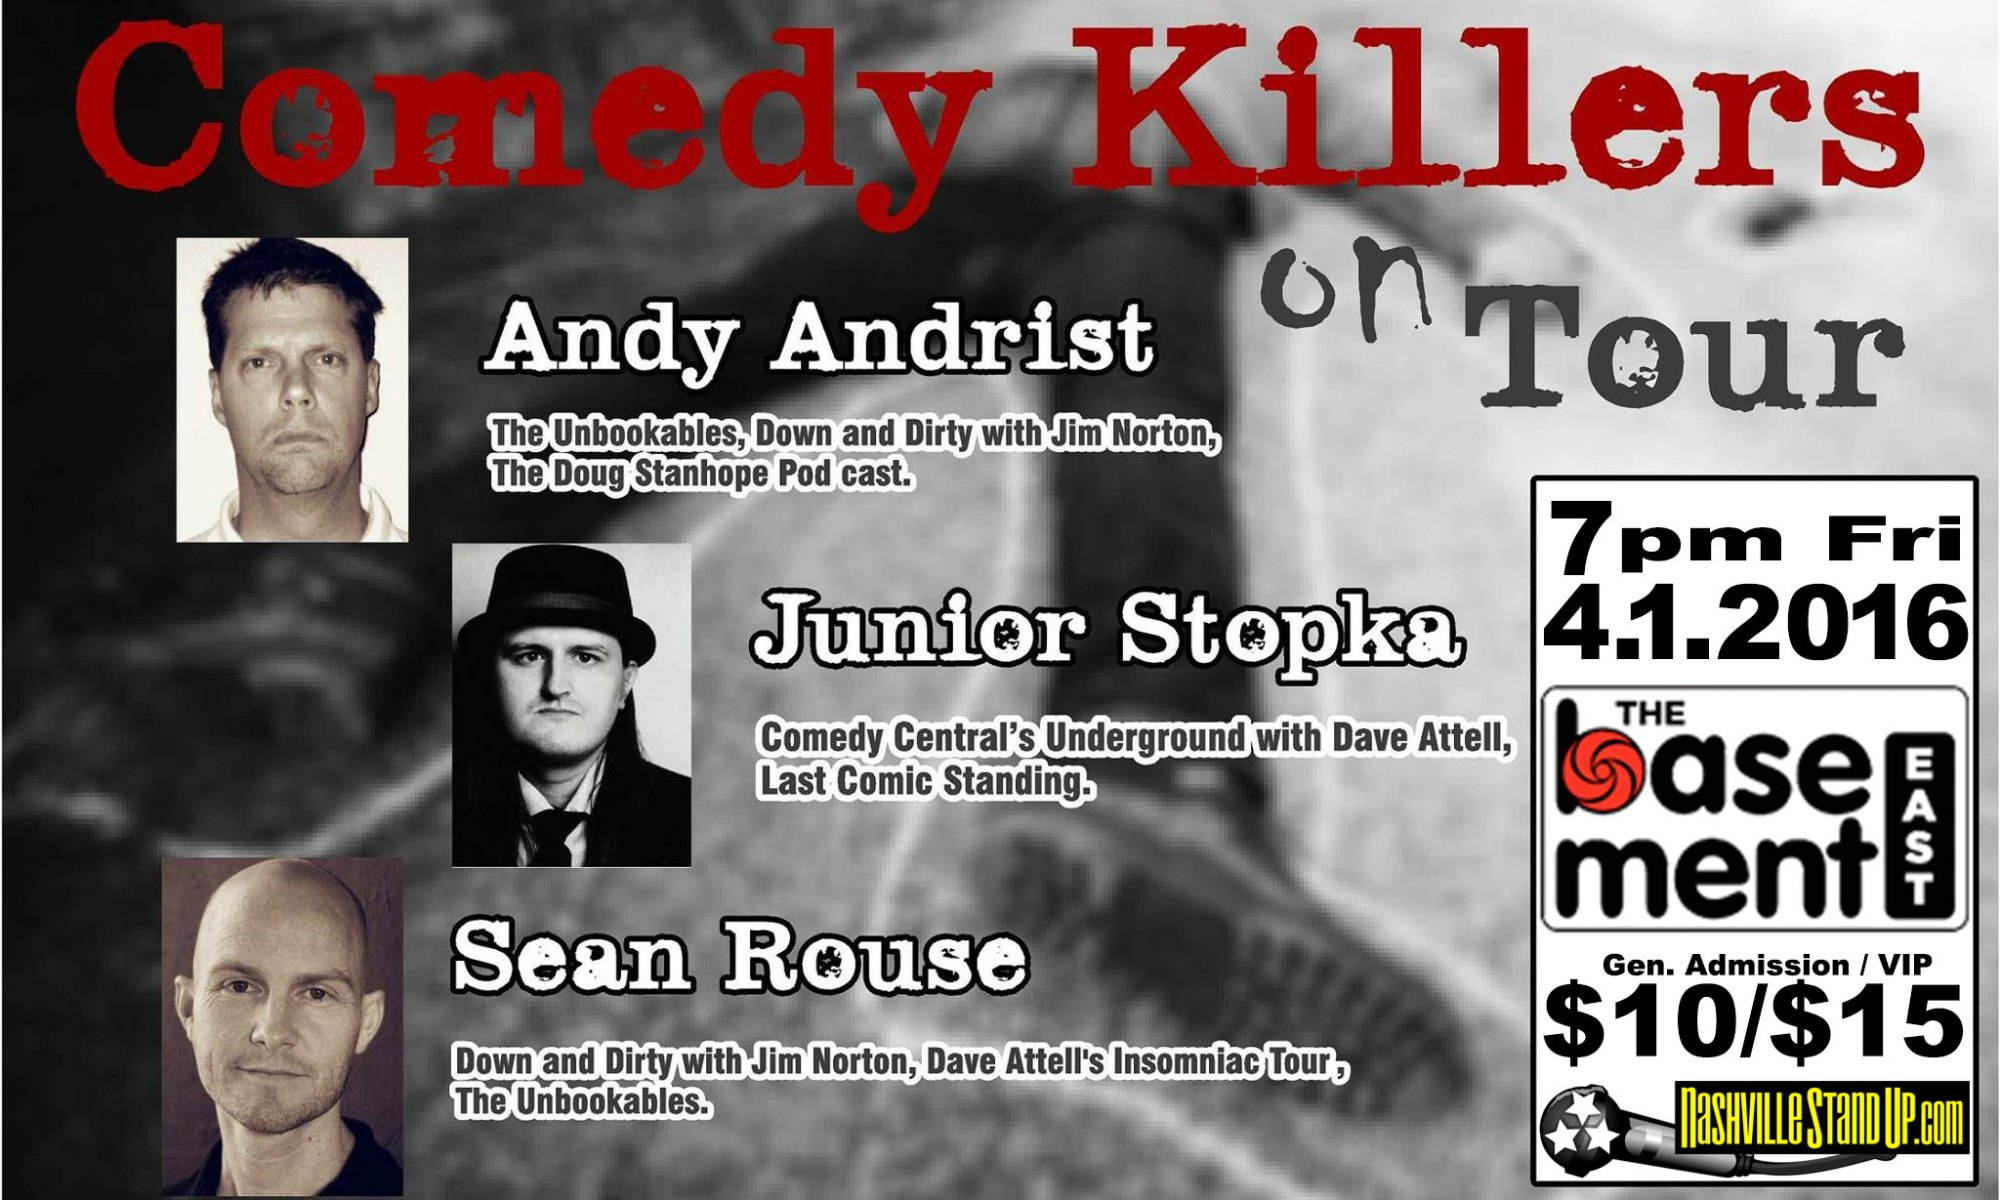 Comedy Killers on Tour: Andy Andrist, Sean Rouse, Junior Stopka at The Basement East 4/1/2016